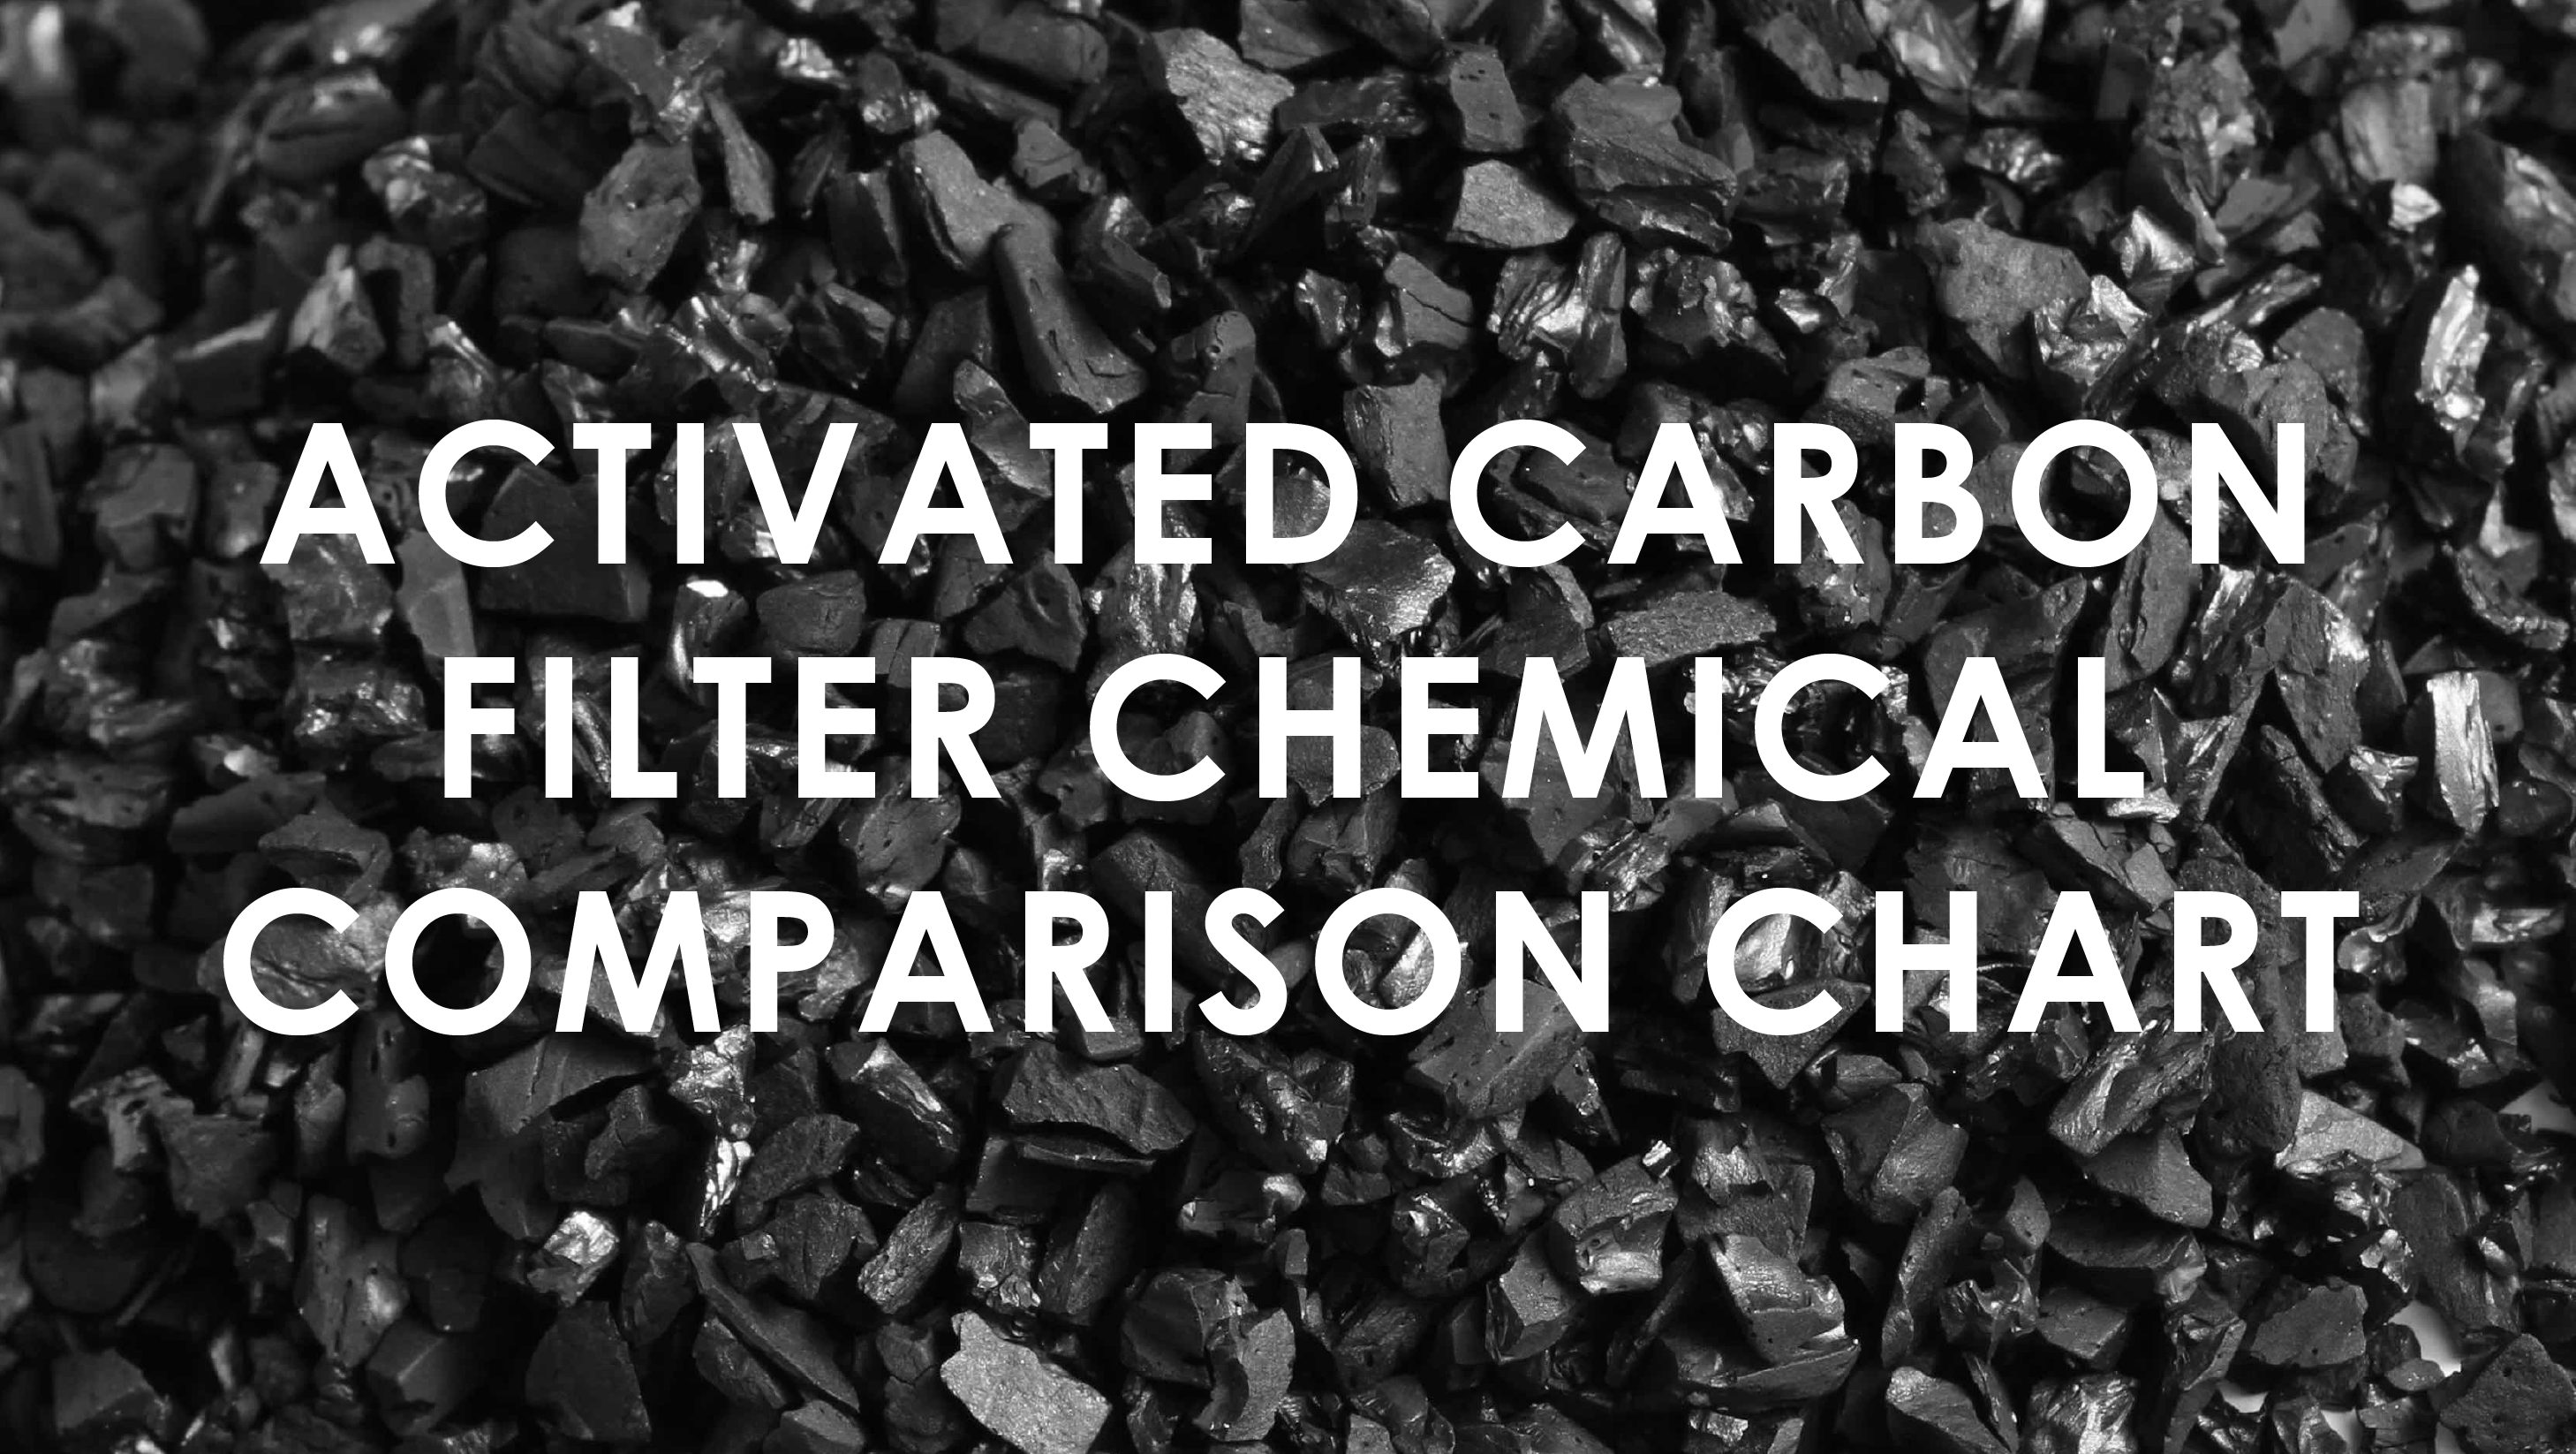 LabHub | News | Activated Carbon Filter Chemical Comparison Chart